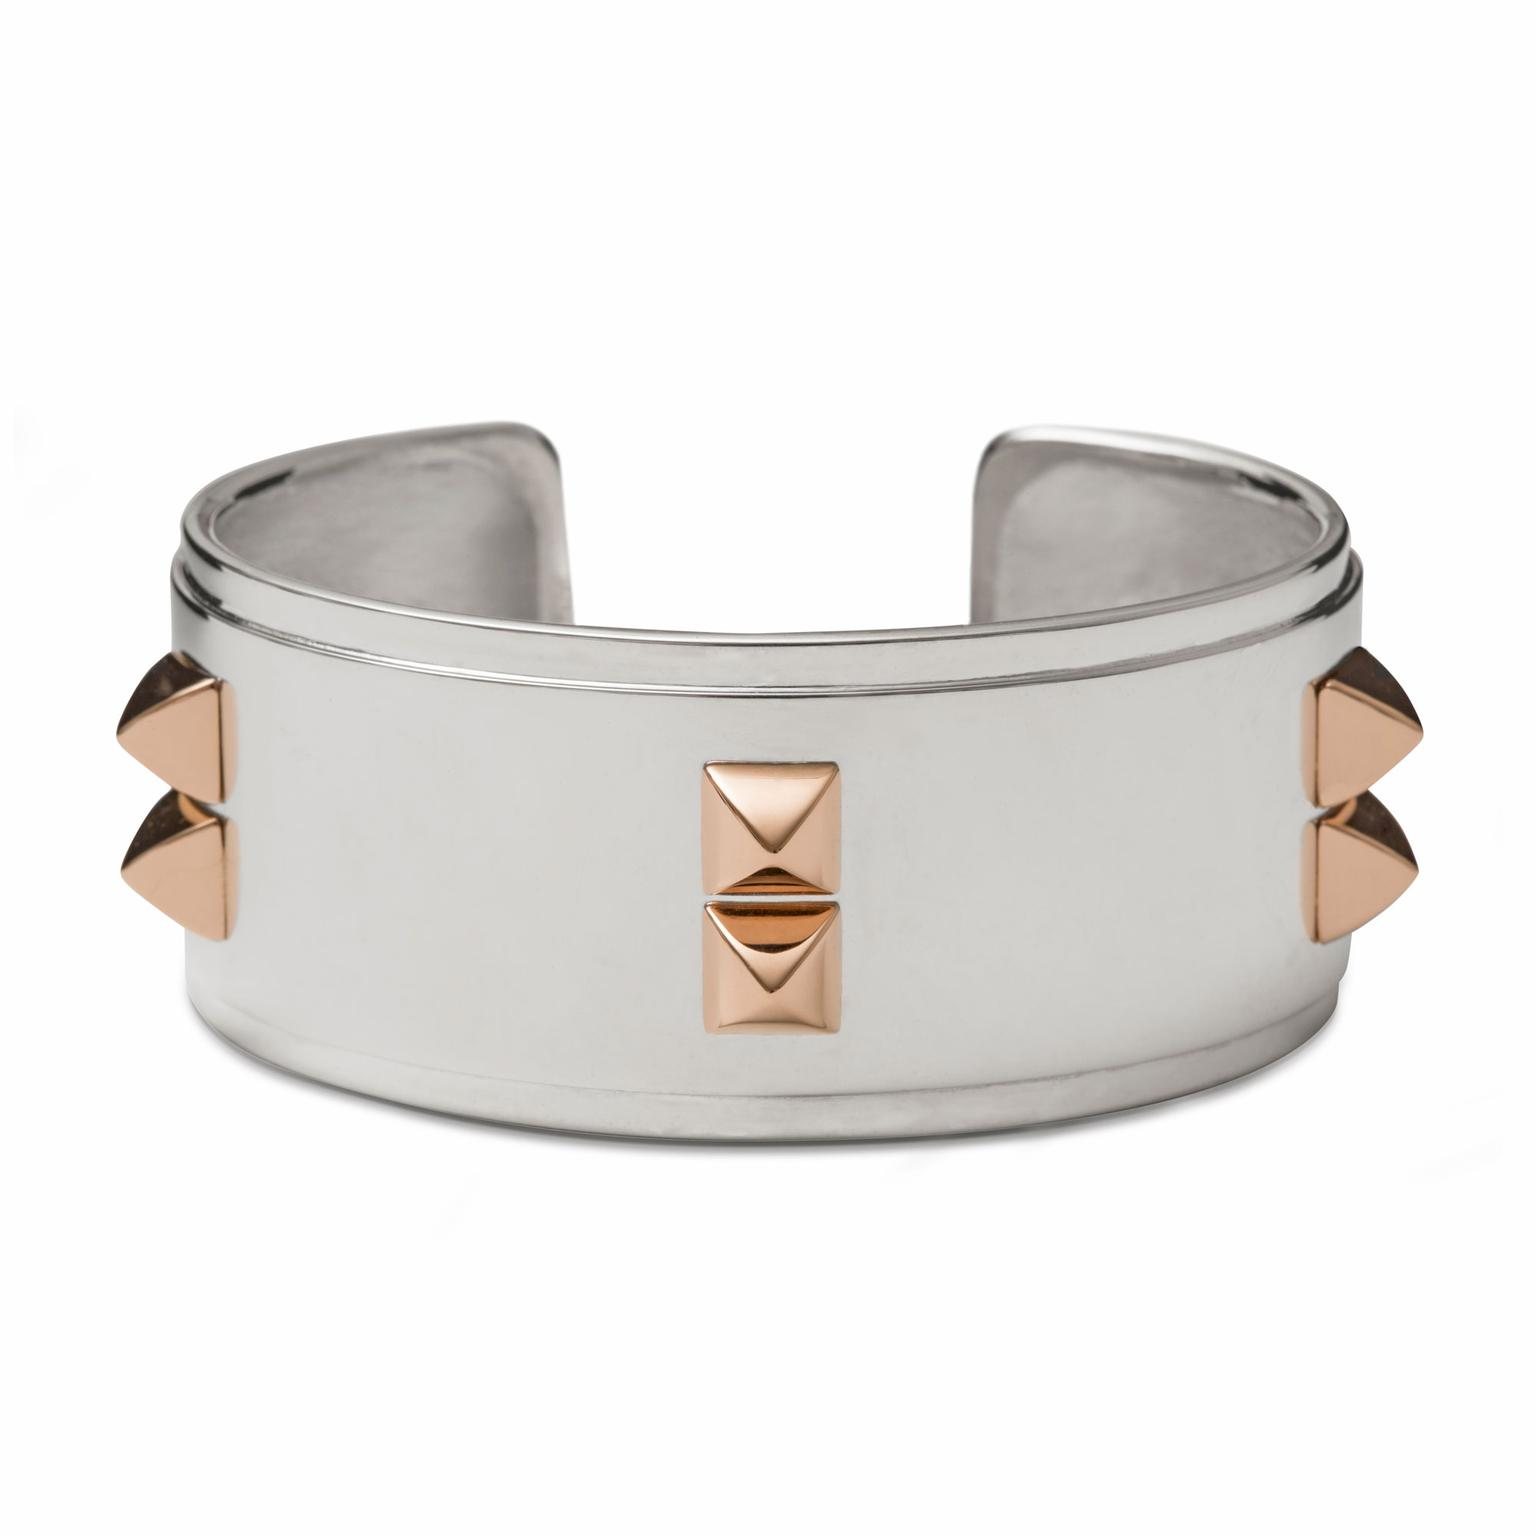 Nana Fink Adorée red gold and silver geometric bangle